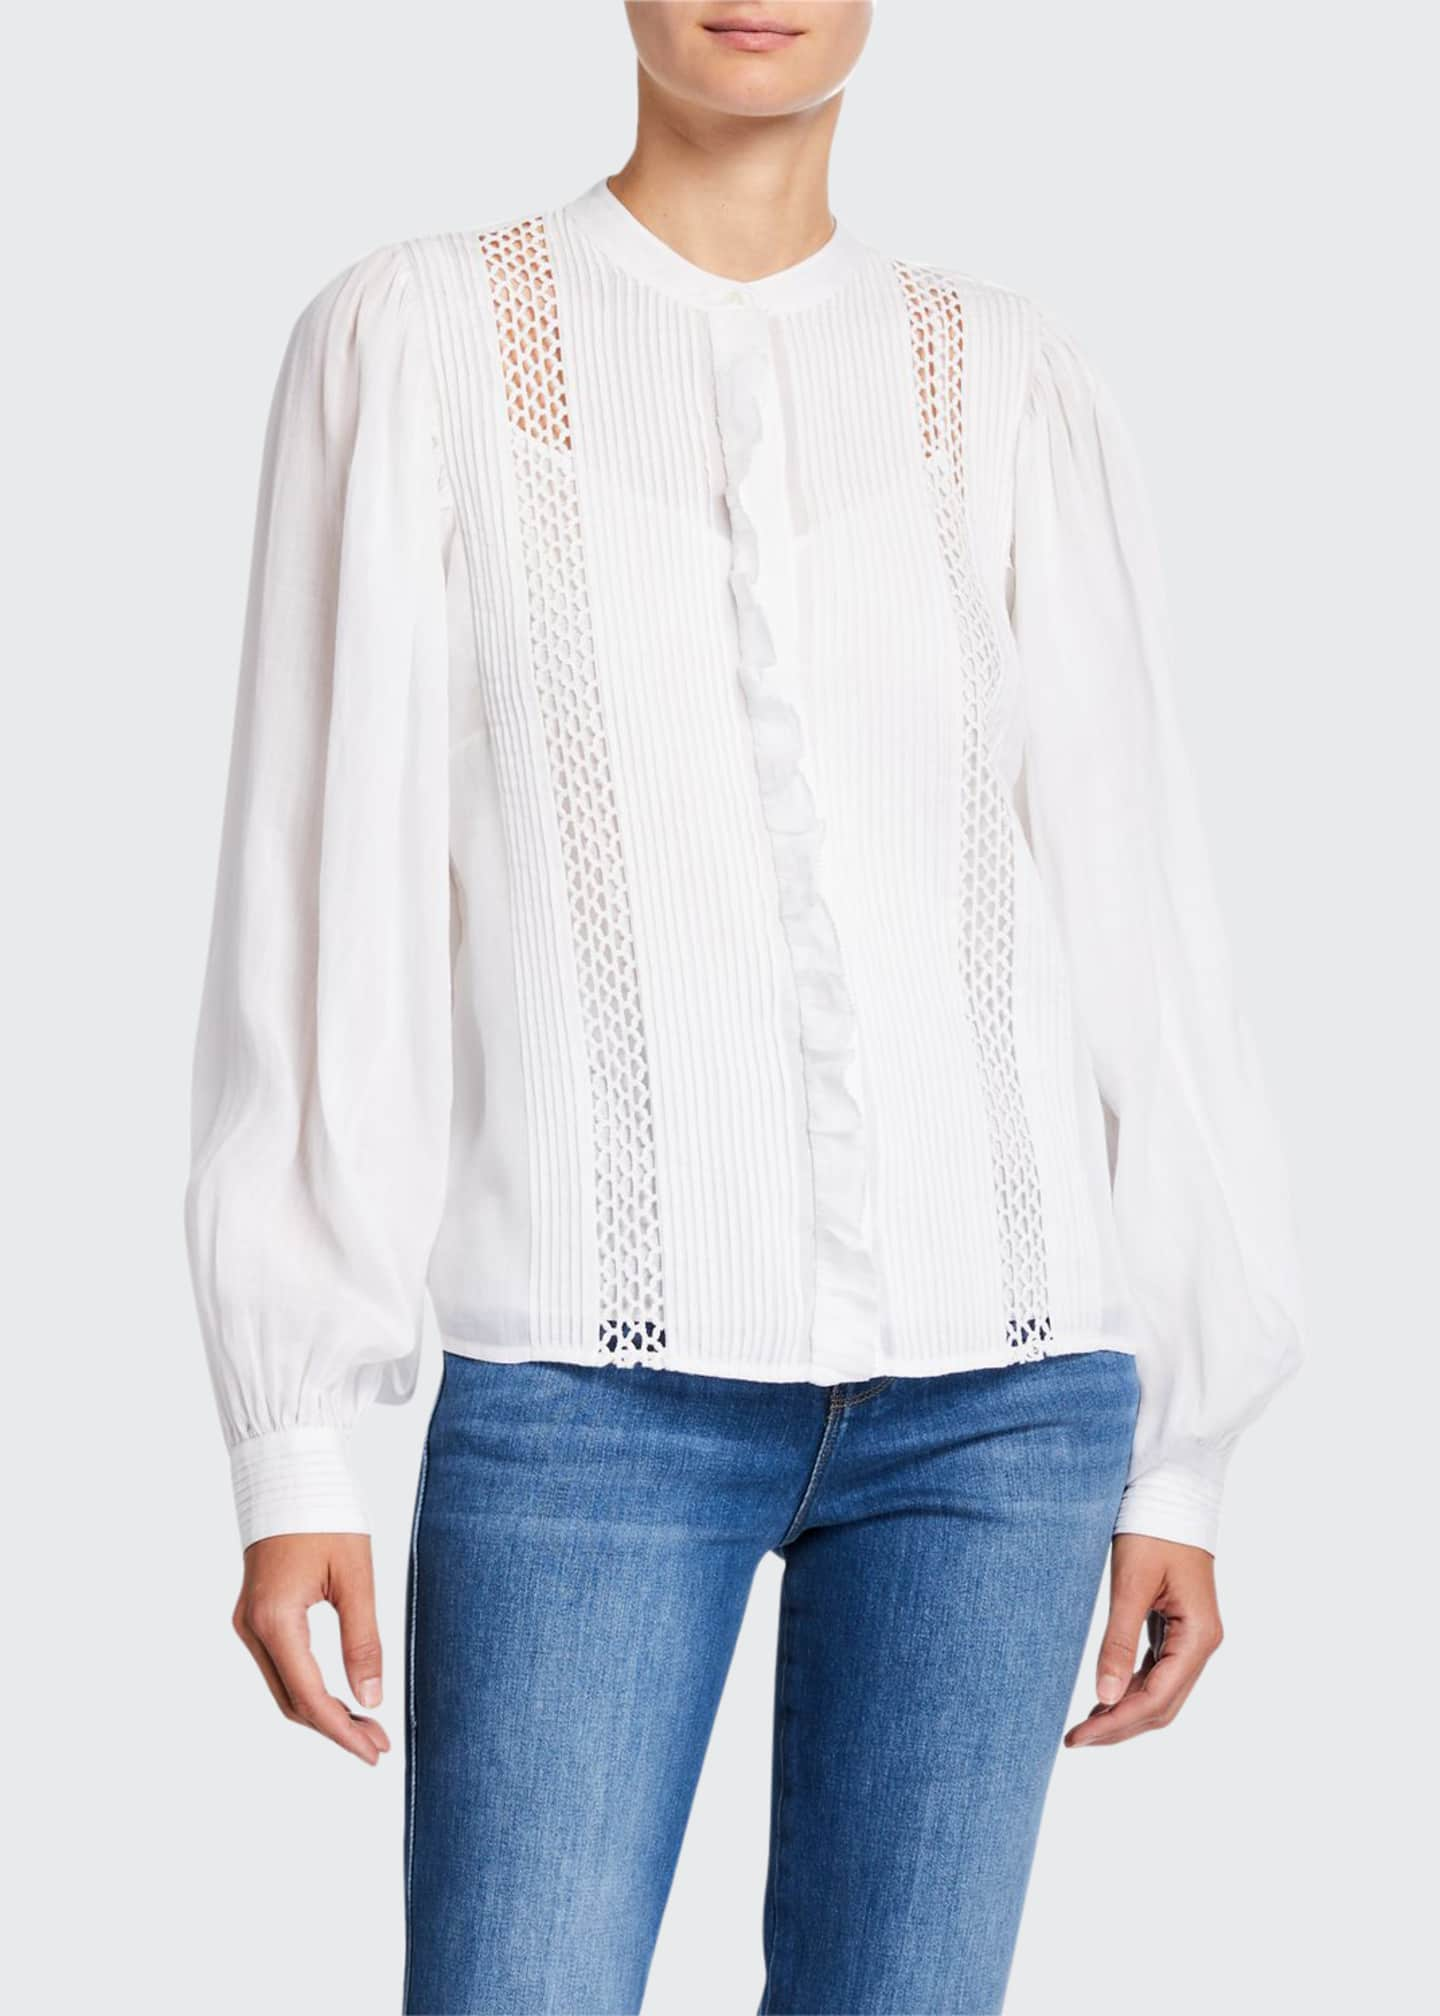 FRAME Long-Sleeve Pintucked Blouse with Lace Insets